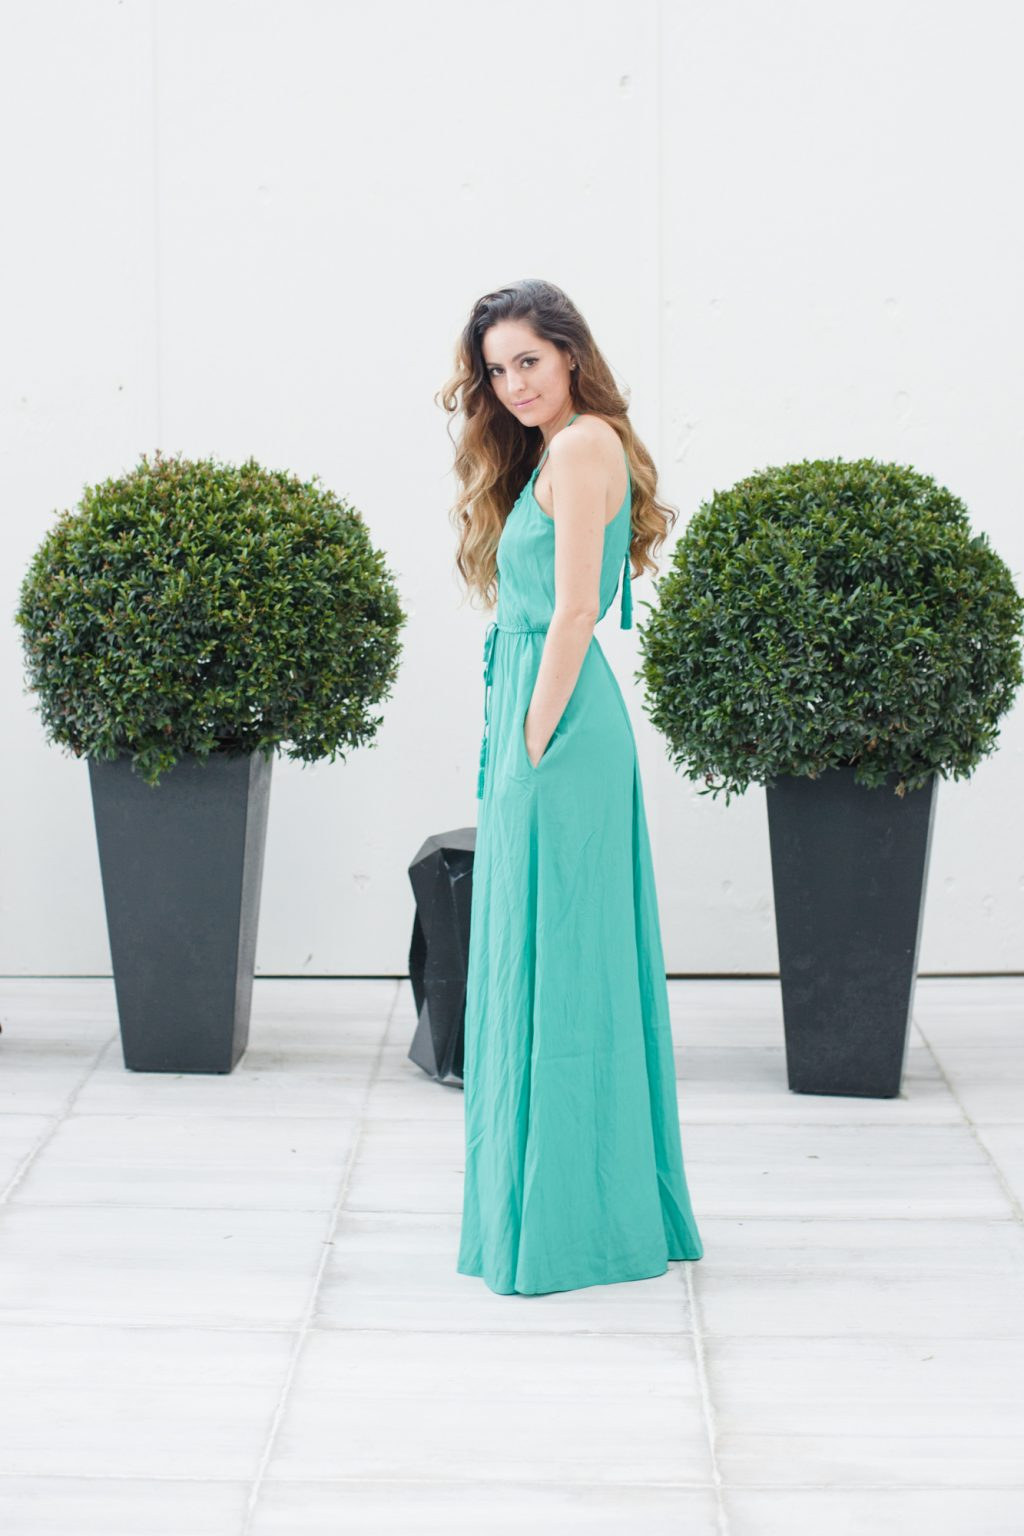 st regis bal harbour, calypso st barth, Batinly V-Neck Maxi Dress, turquoise maxi dress, miami beach, summer style